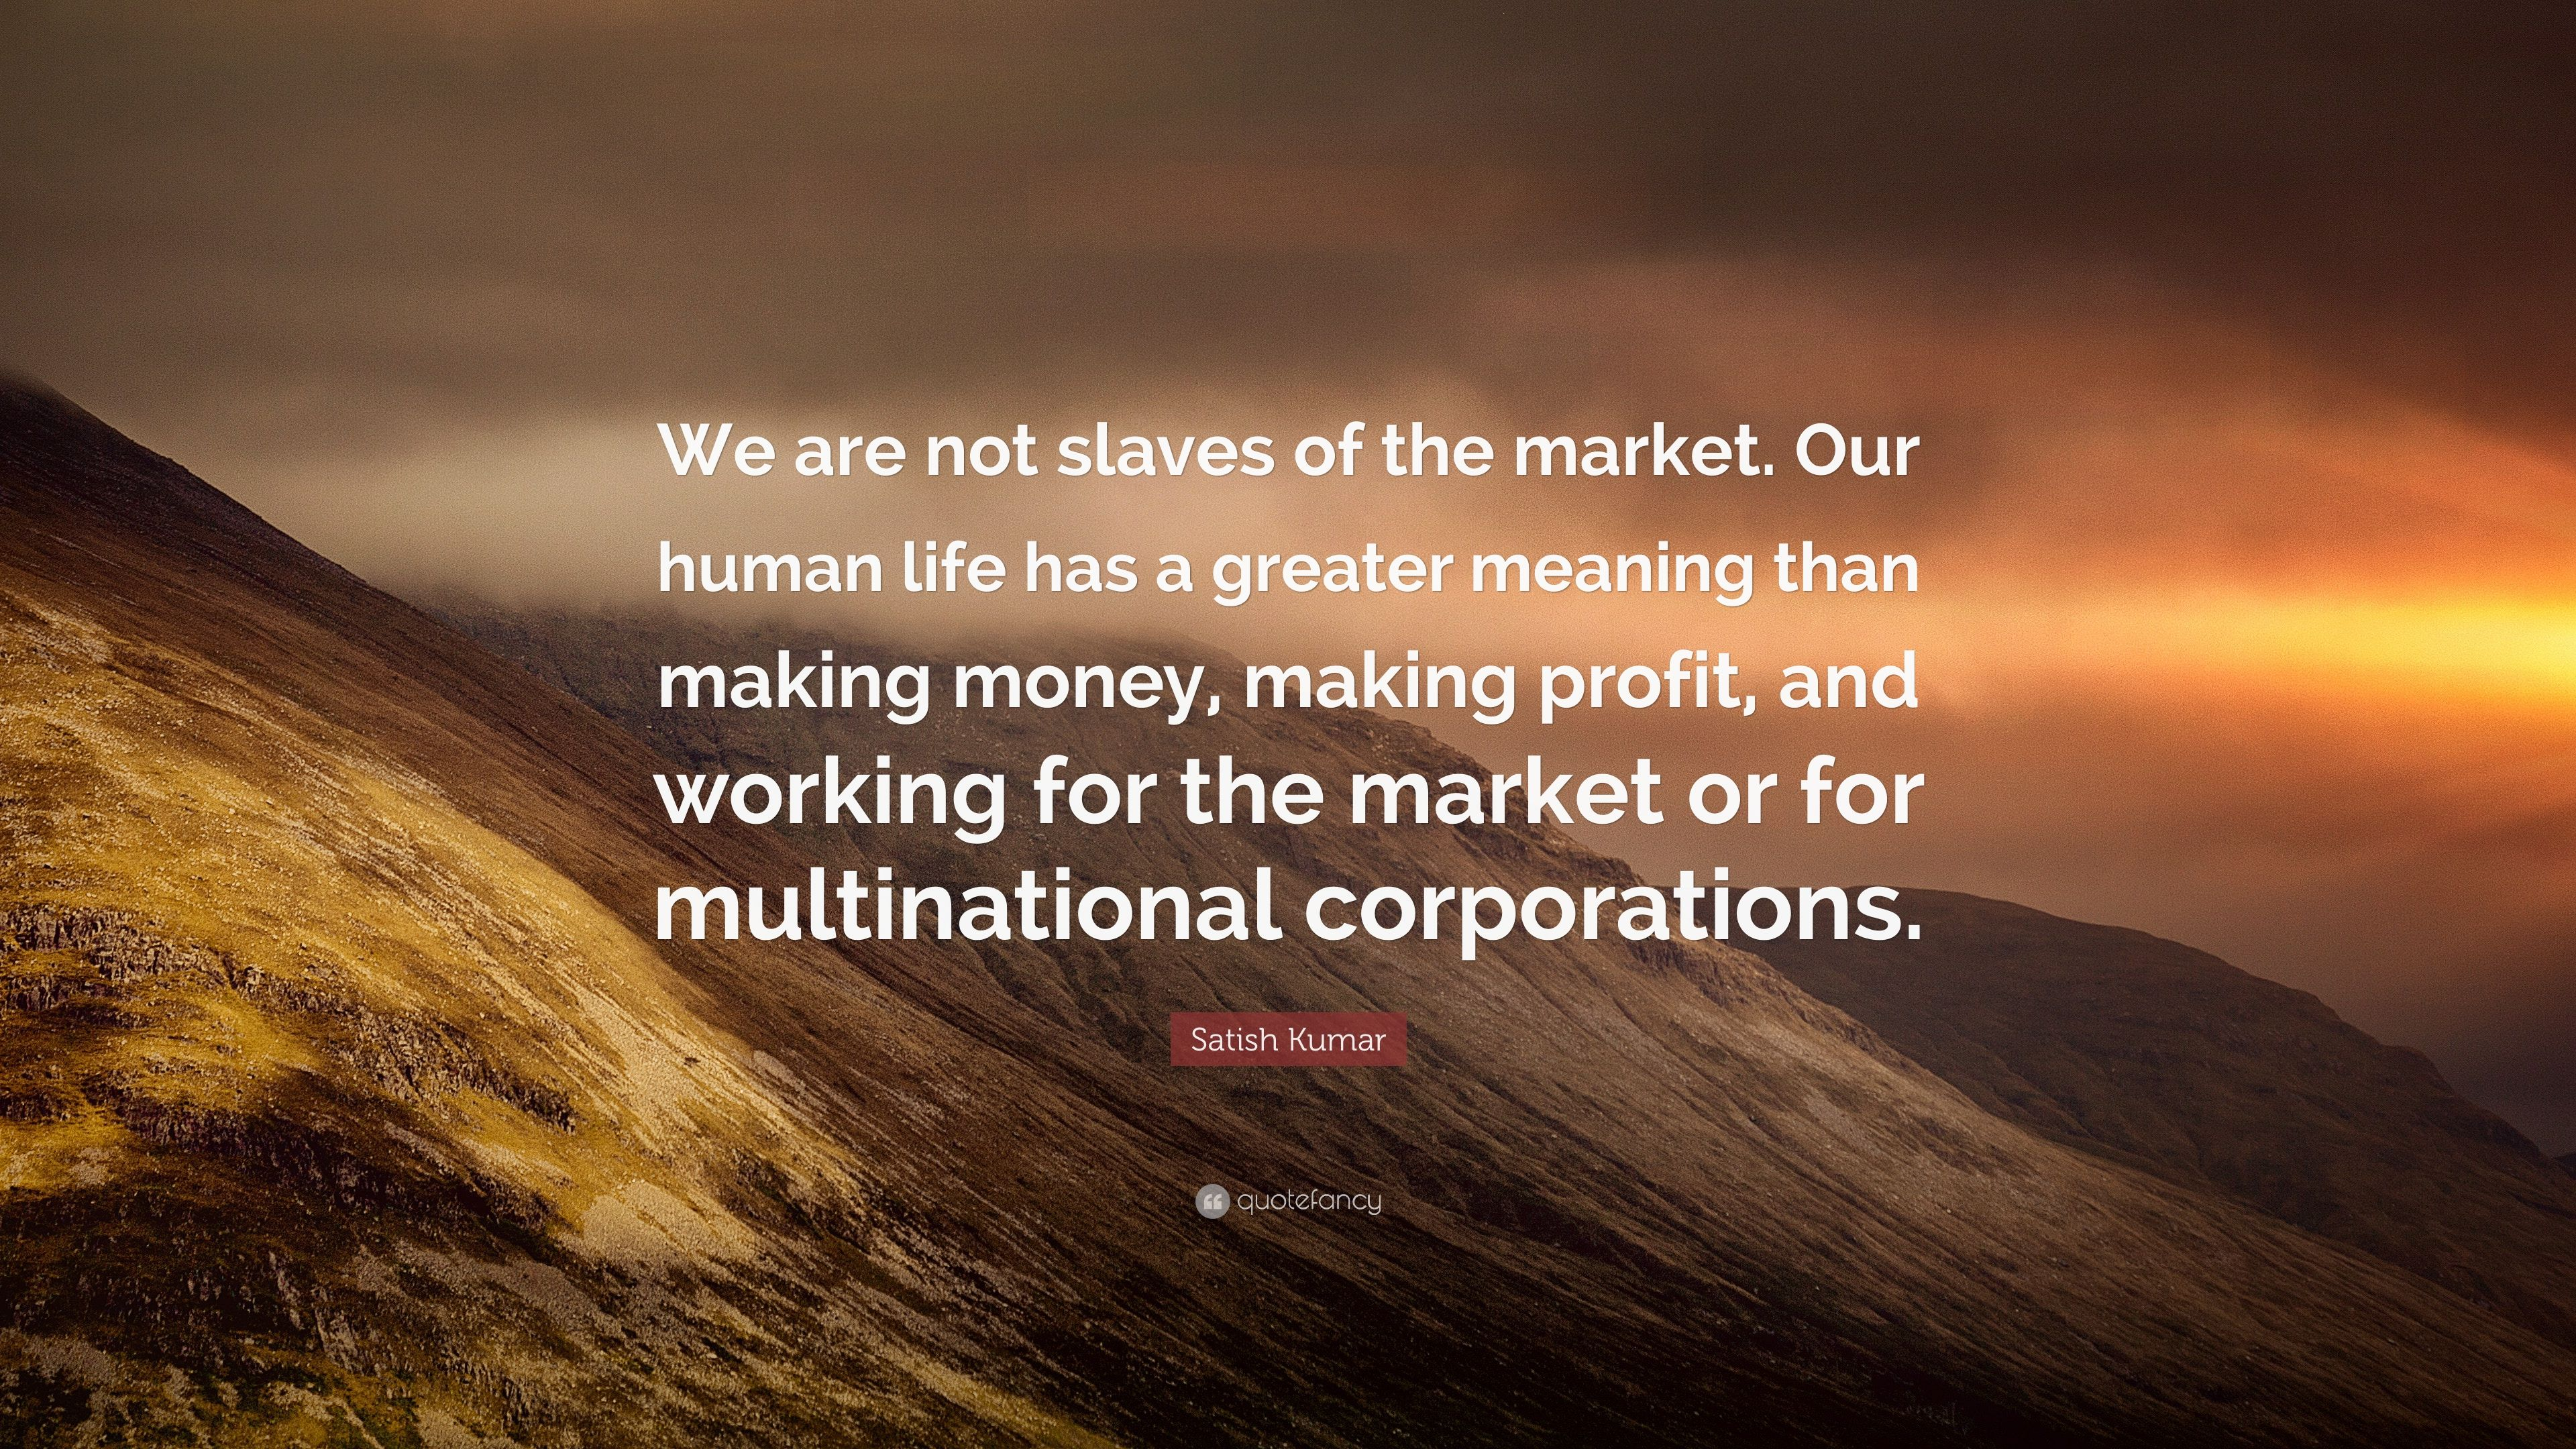 https://quotefancy.com/media/wallpaper/3840x2160/5412009-Satish-Kumar-Quote-We-are-not-slaves-of-the-market-Our-human-life.jpg